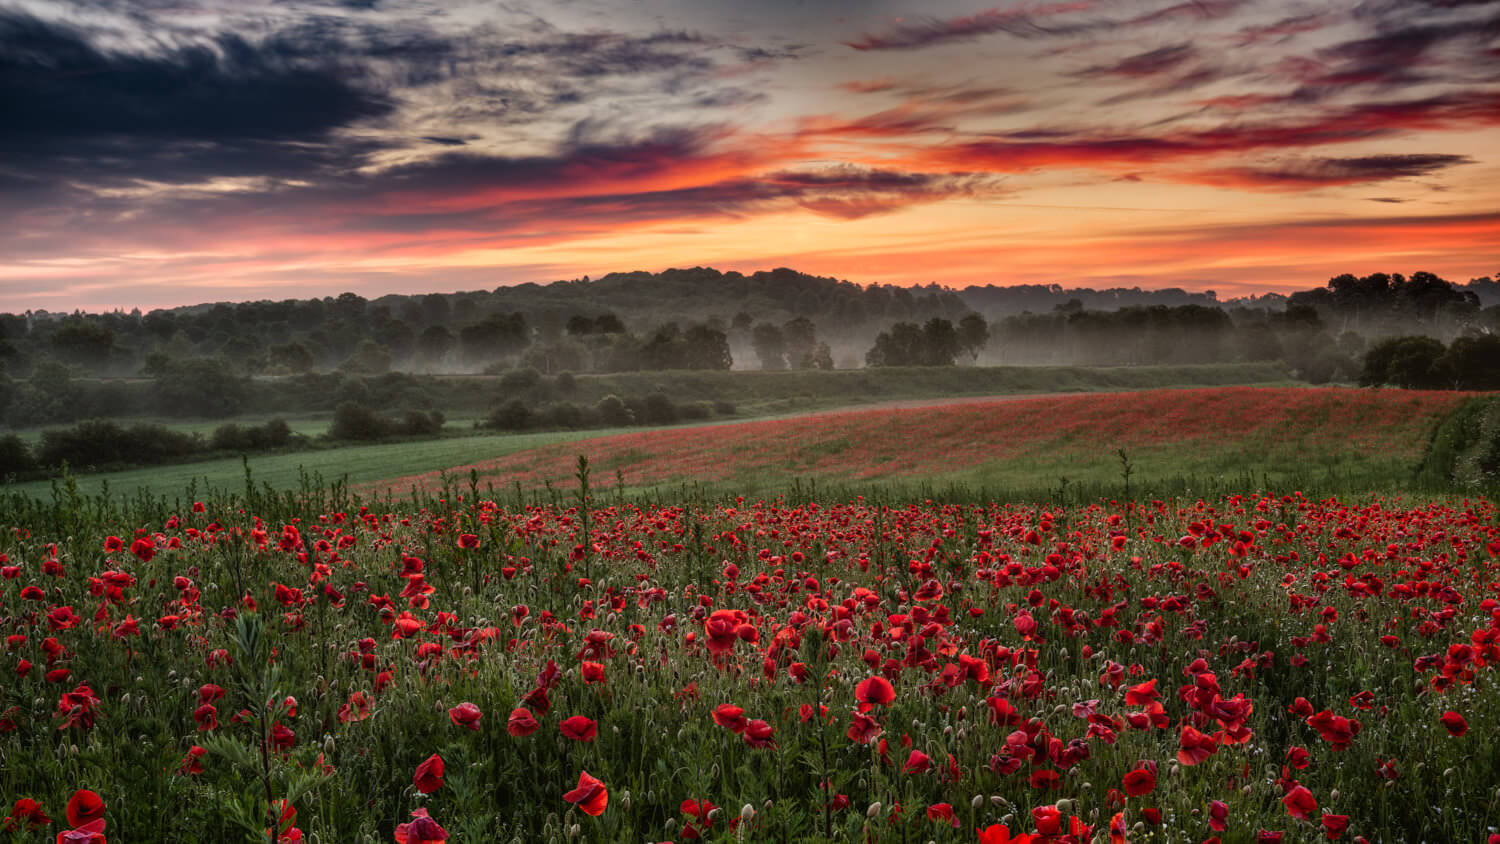 Click on image to see more example shots from the poppy field photography workshops